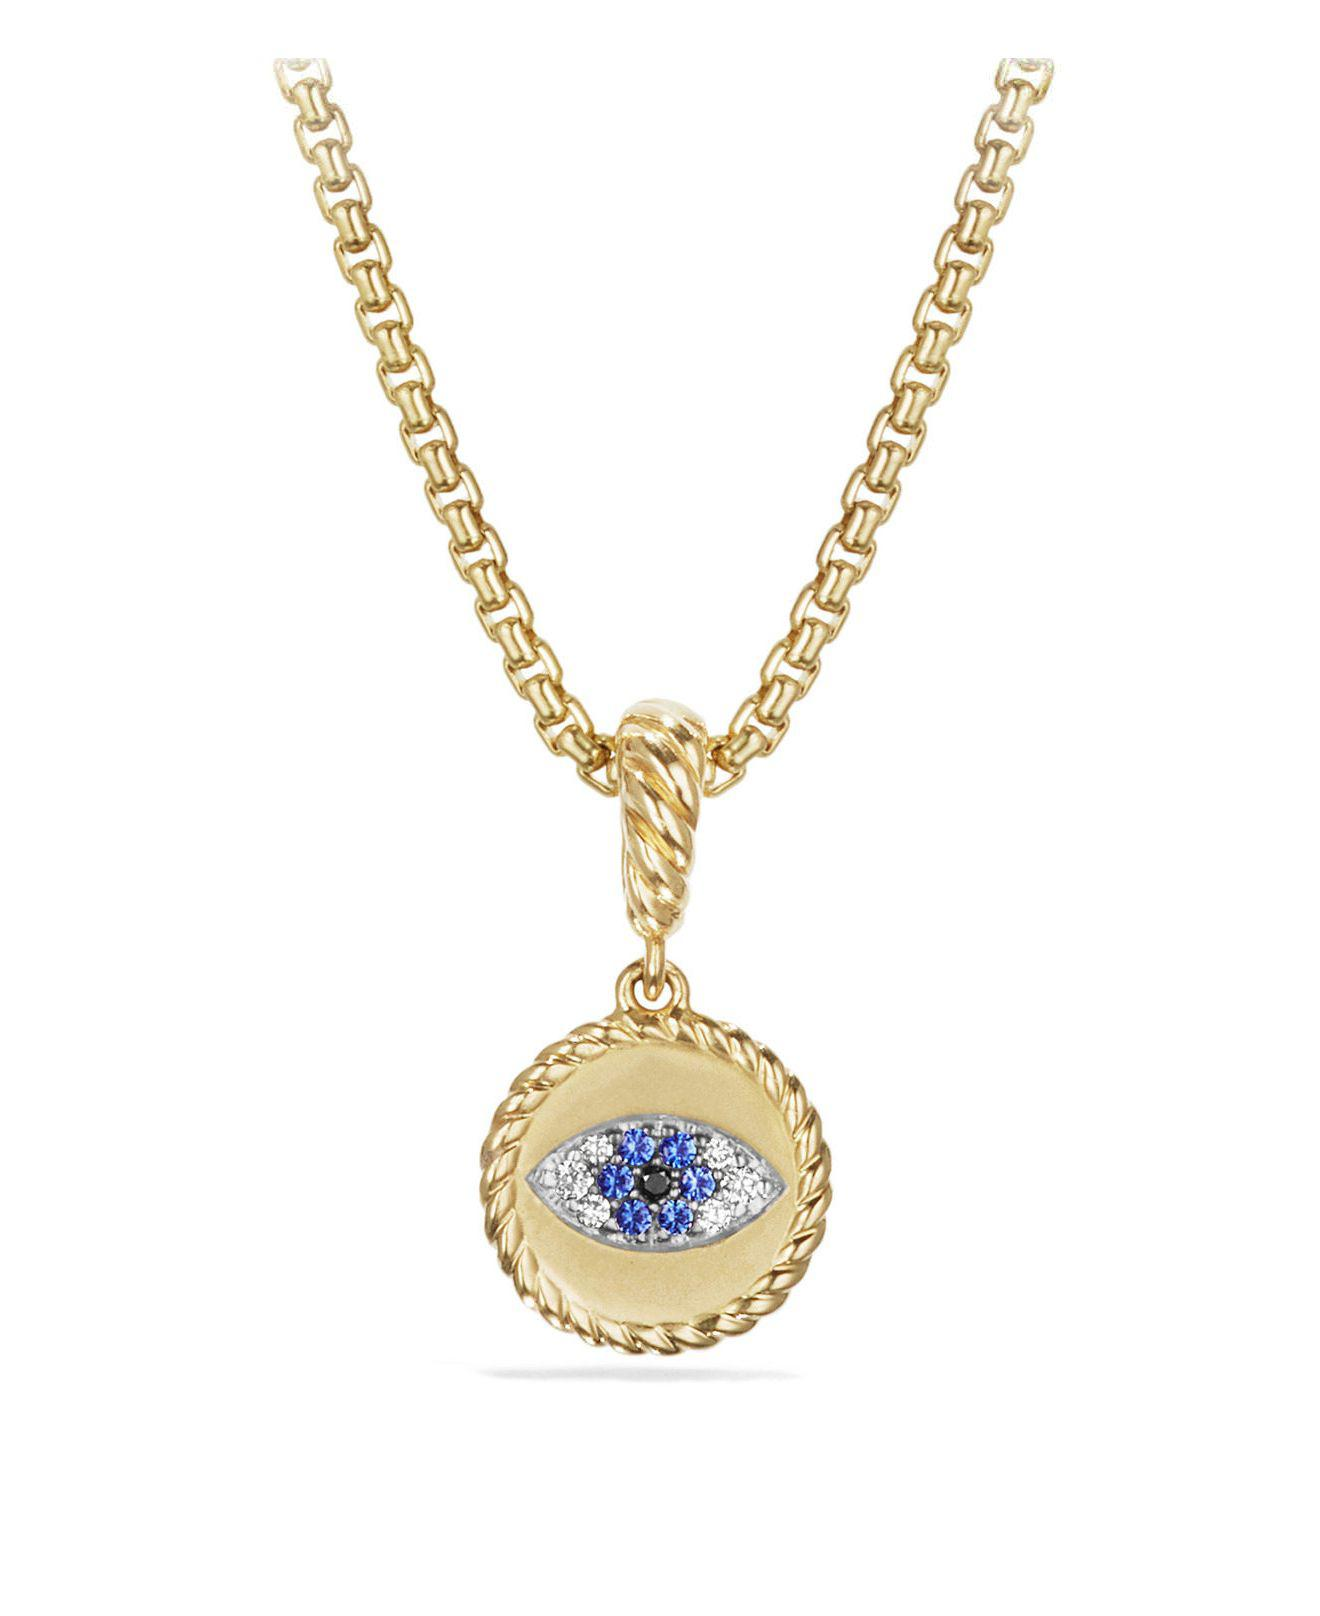 18kt yellow gold Cable Collectibles diamond and sapphire evil eye charm necklace - Metallic David Yurman Discount Shop Offer Low Price Fee Shipping Cheap Price NUS87l